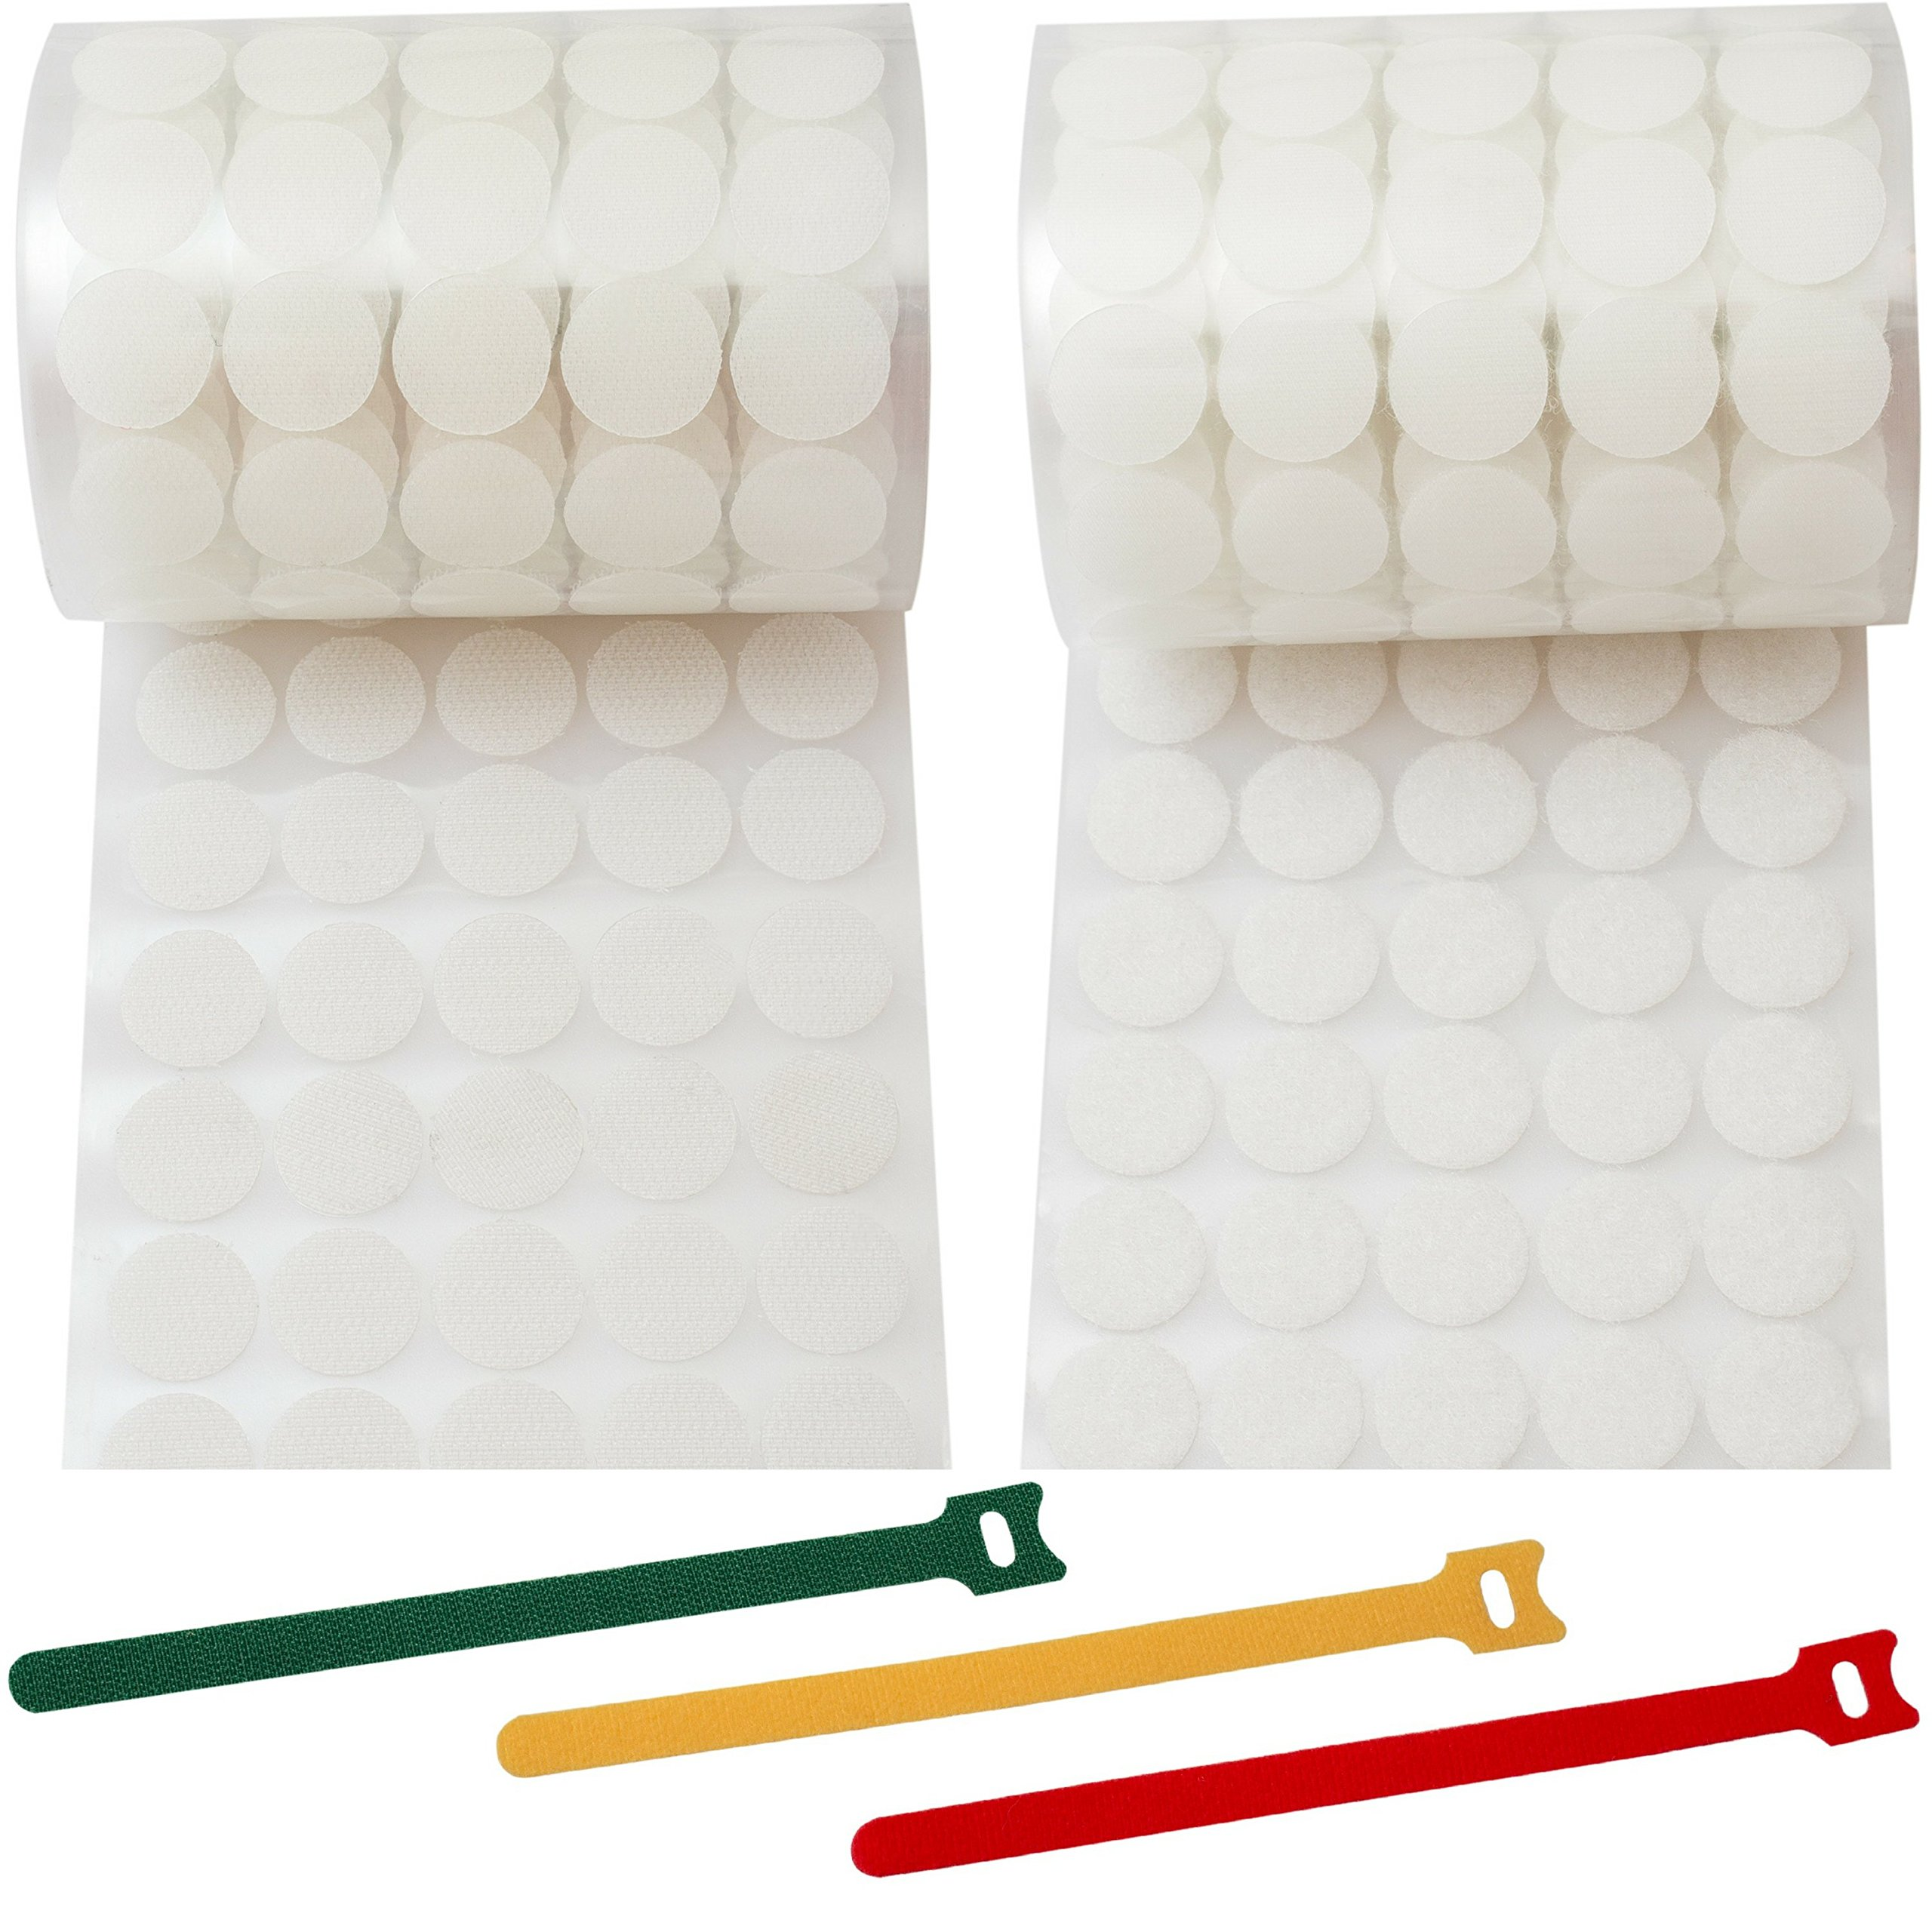 Hook and Loop Dots 1000 pcs White Craft Circles of 3/4 inch Twice More Strong Adhesive Sticky Back Coins (500 Pairs/Set) + 15pcs of Reusable Cable Ties